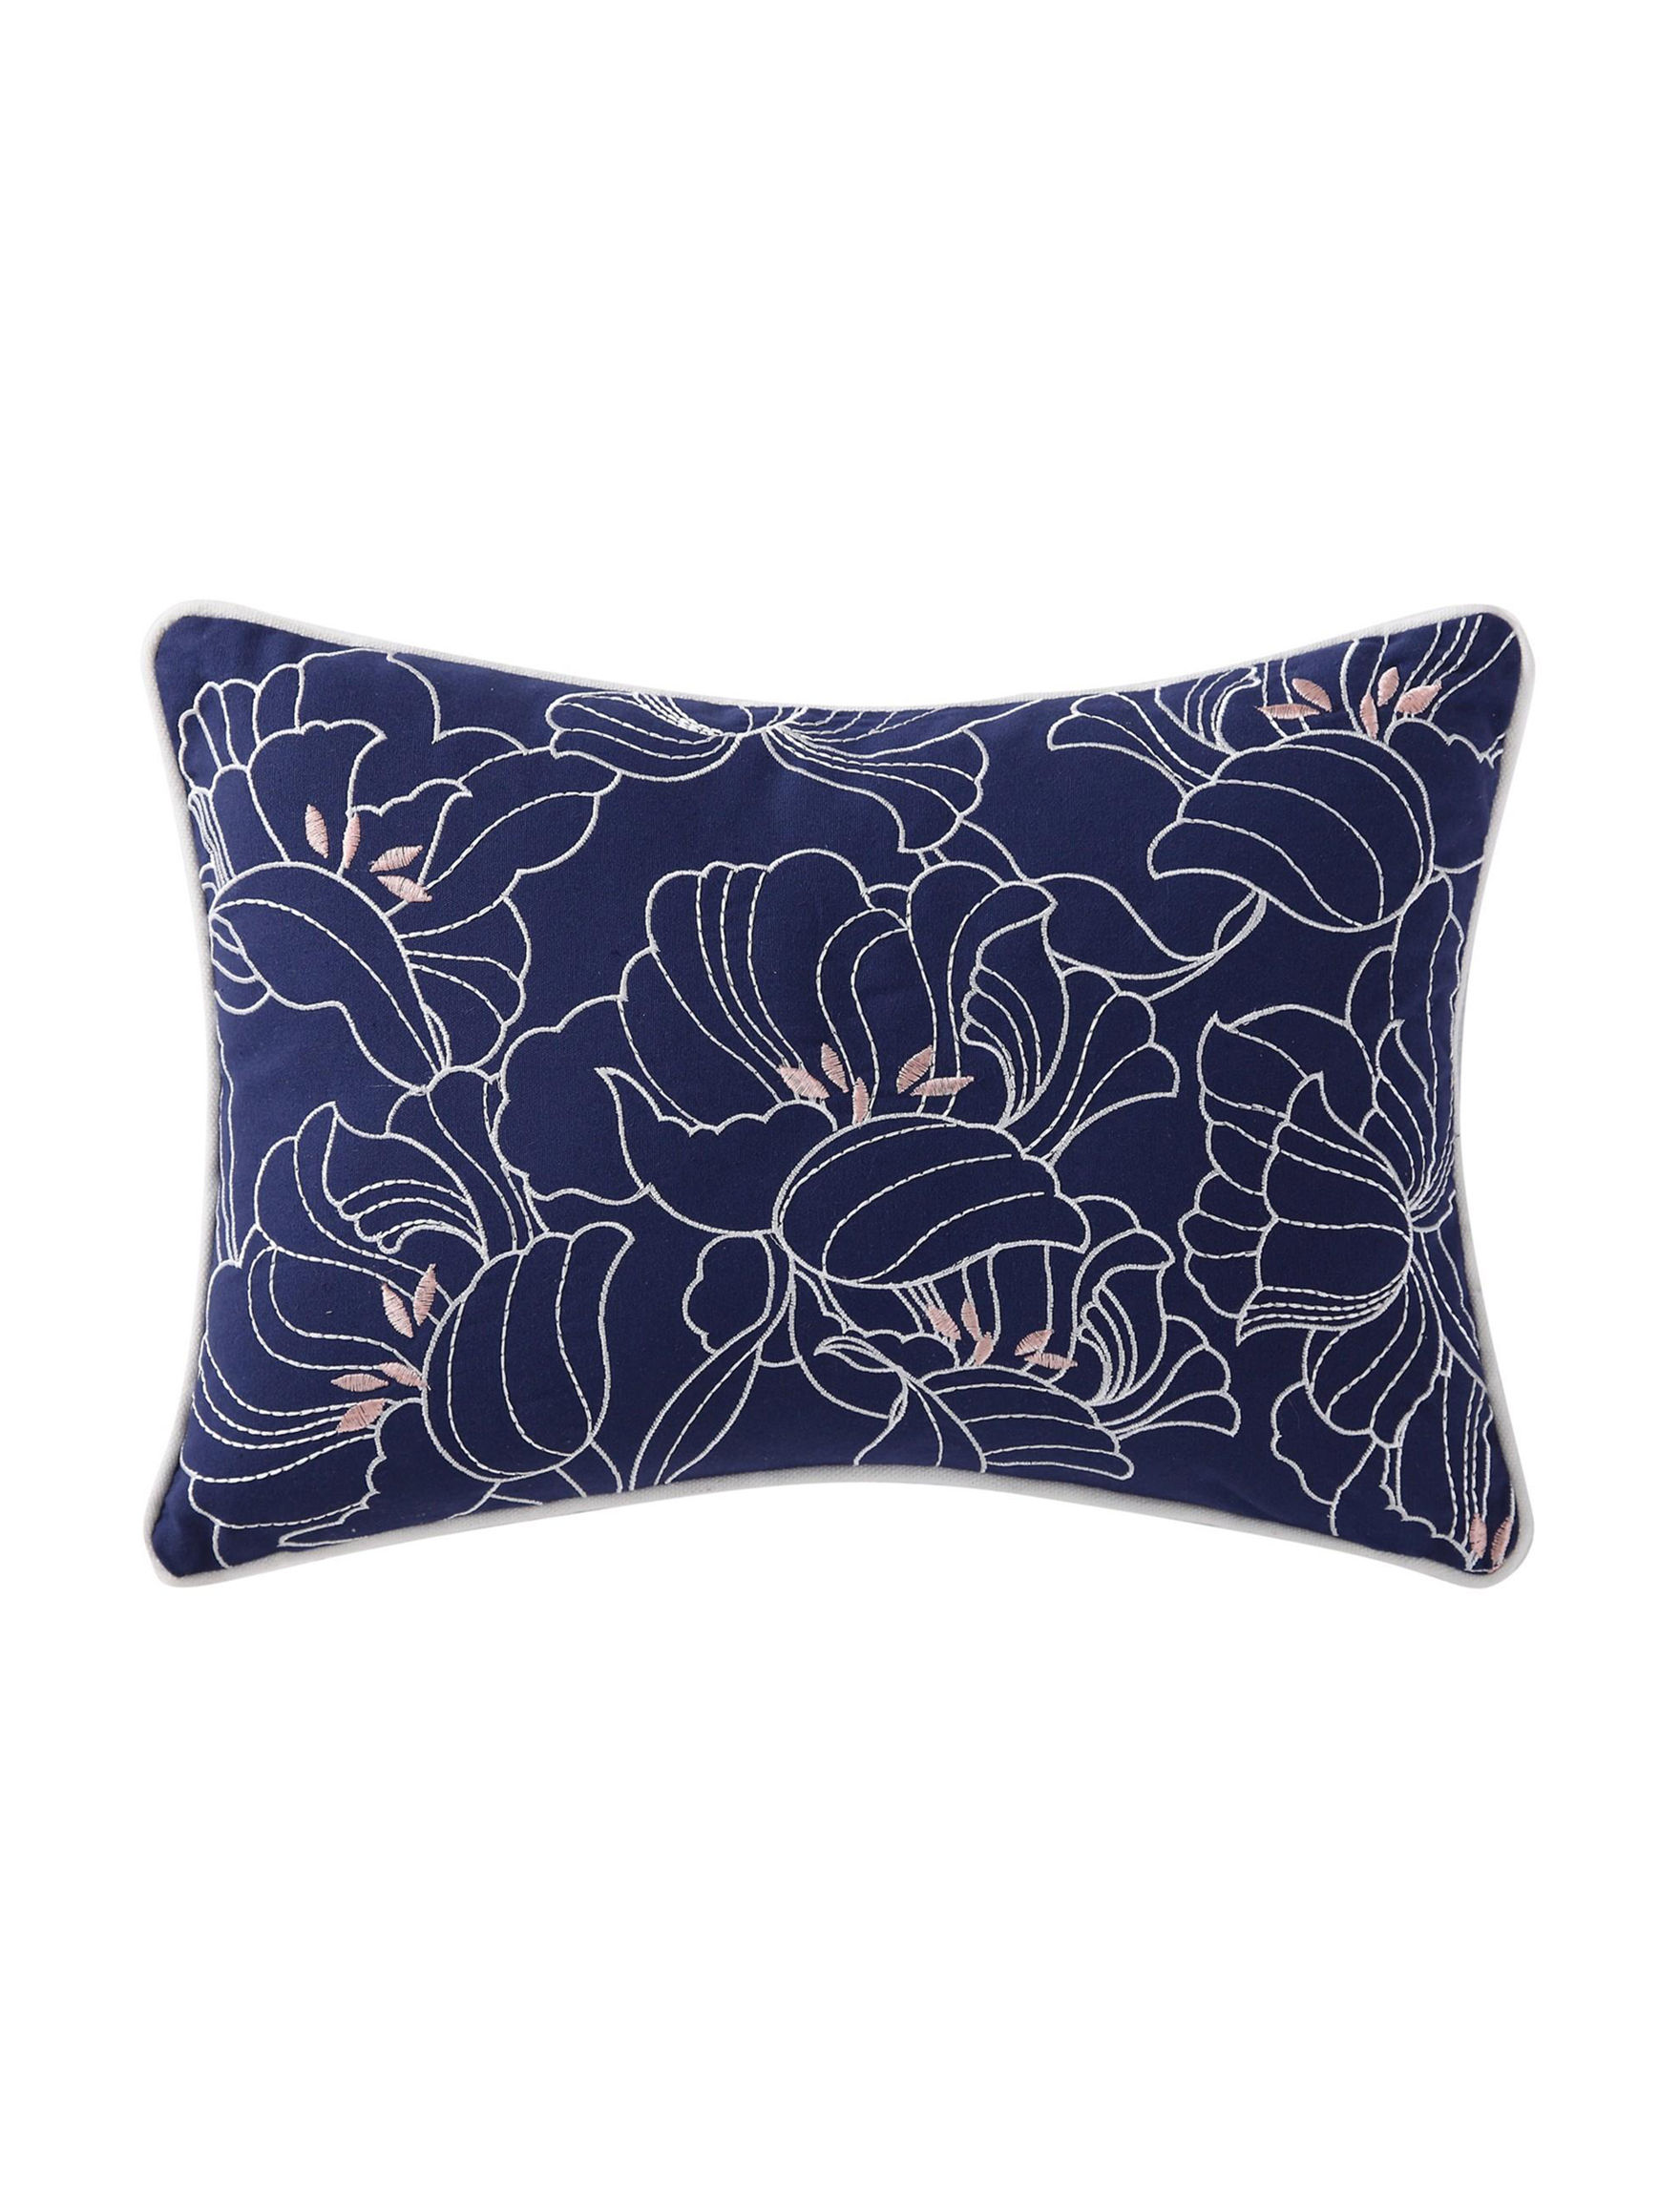 Oceanfront Resort Navy / White Bed Pillows Decorative Pillows